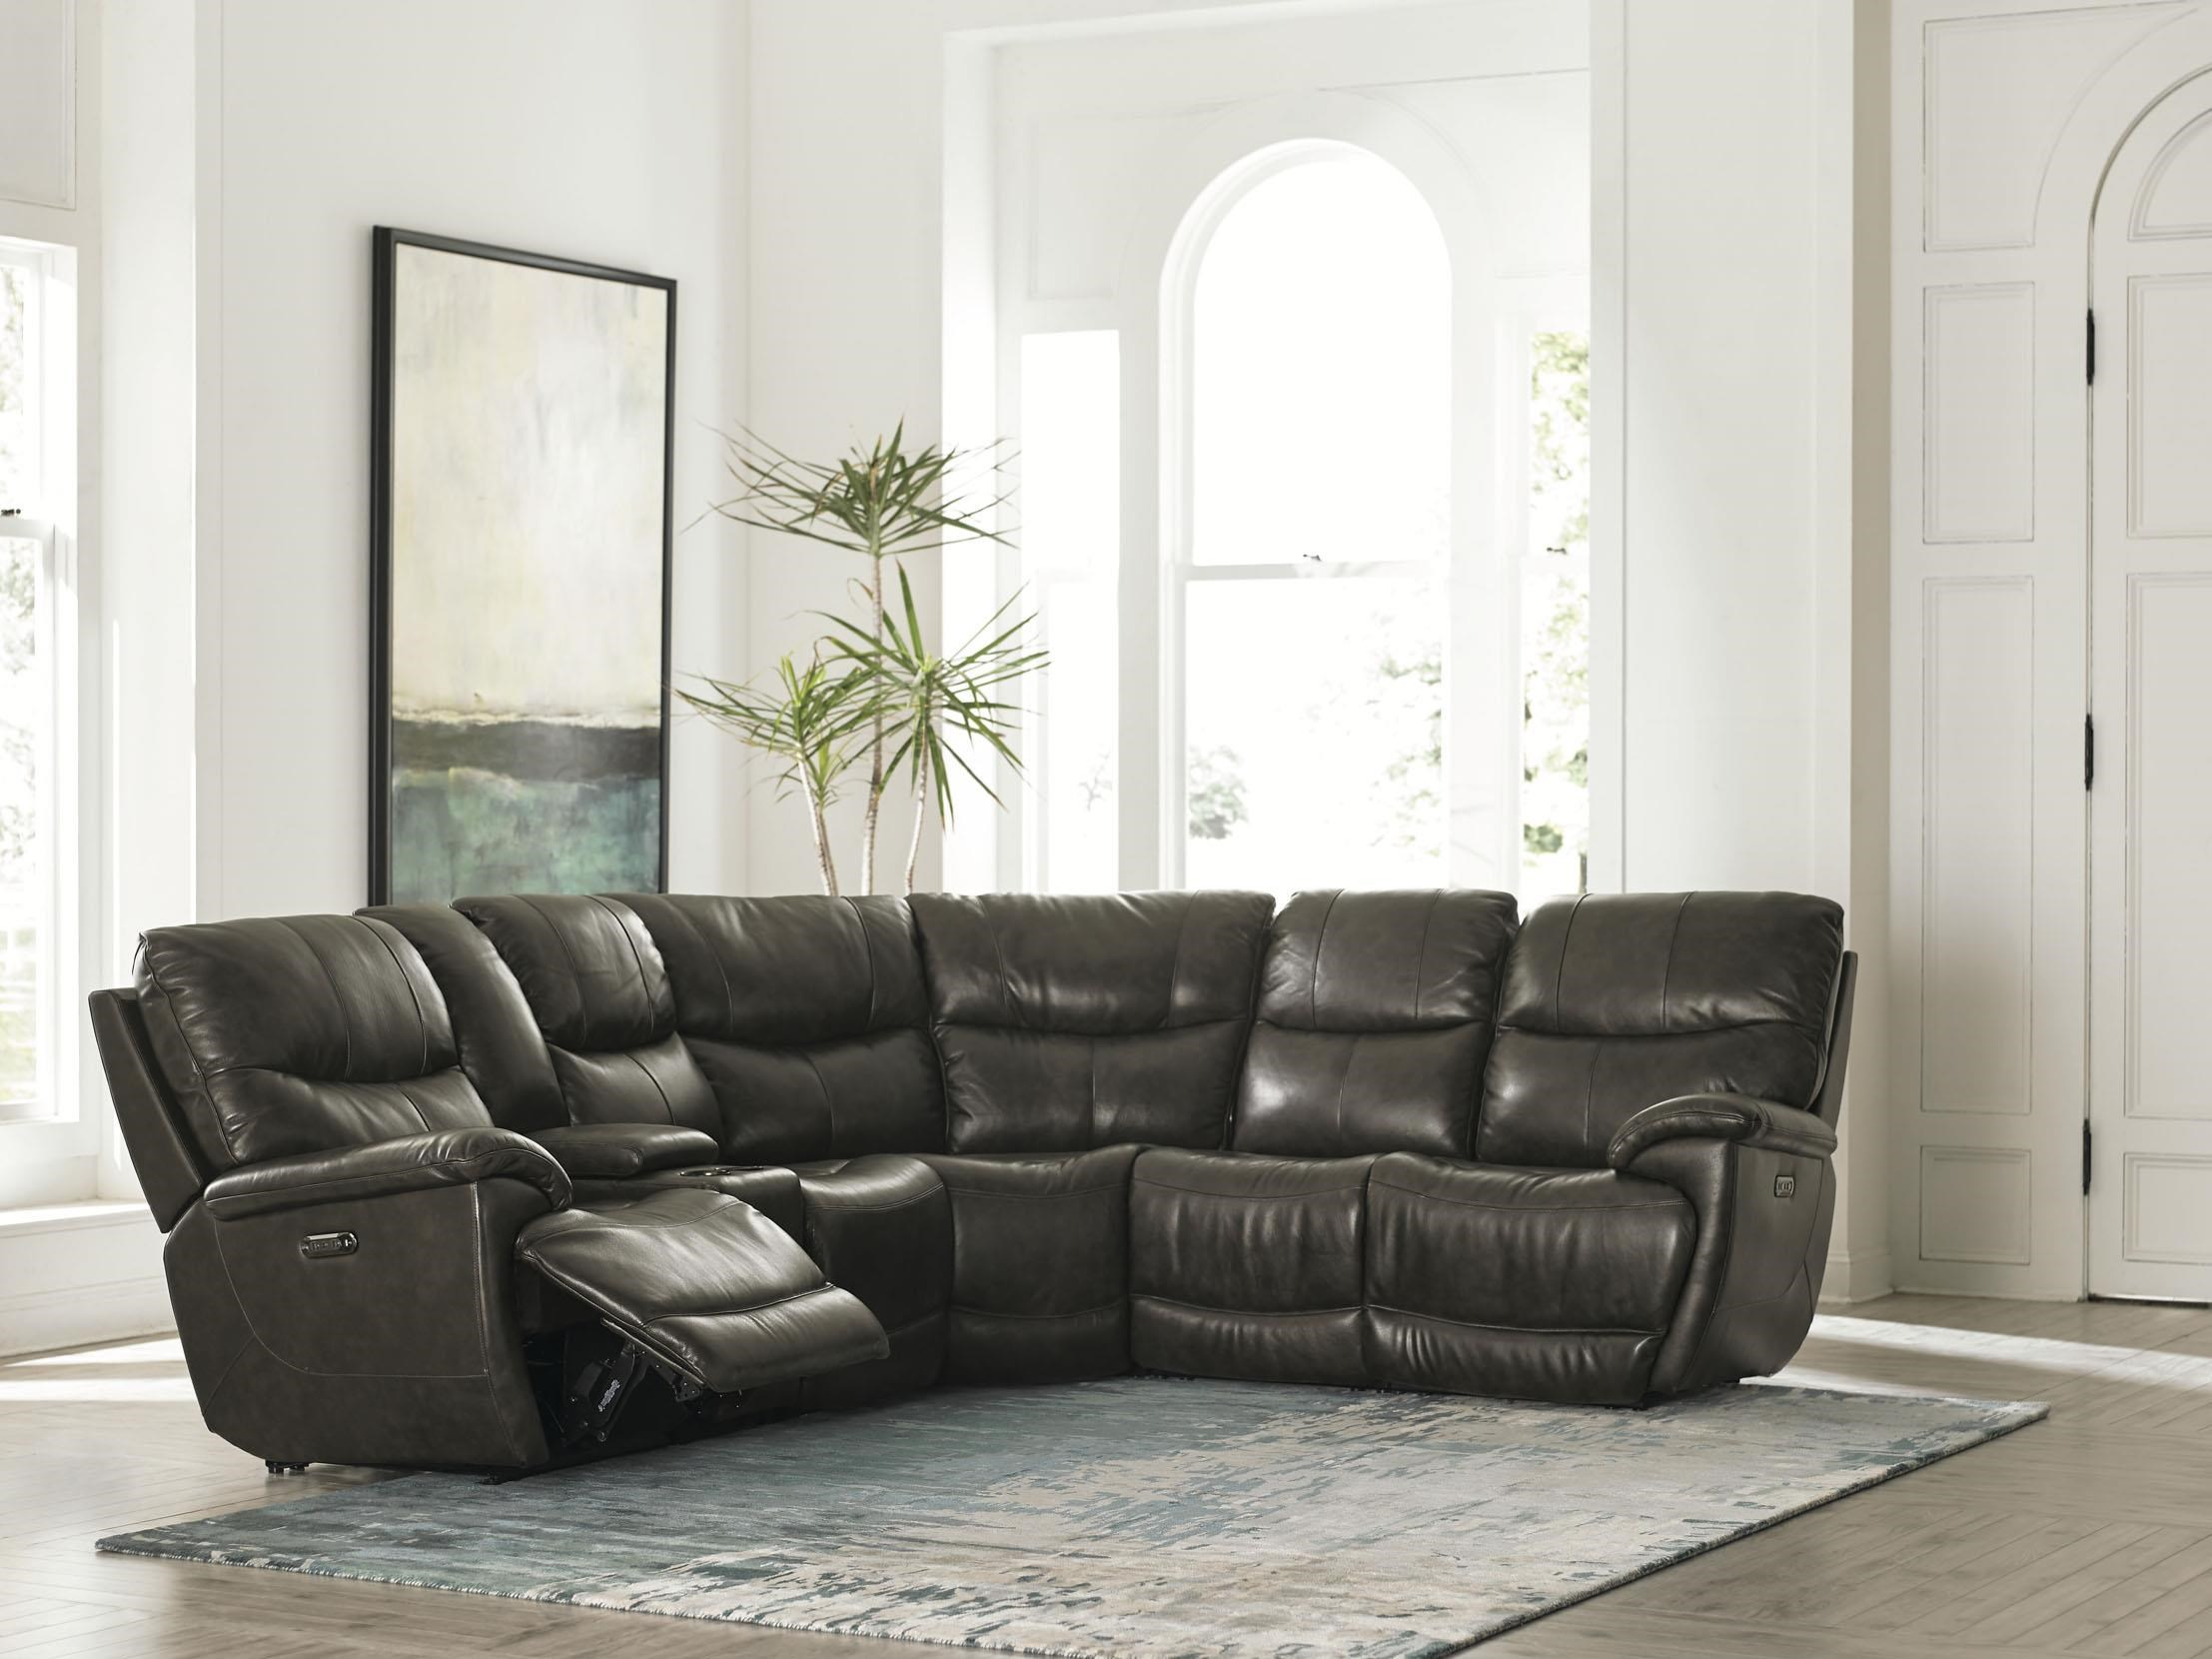 Brookville - Club Level by Bassett 6 Piece Top Grain Leather Match Power Sectio by Bassett at Darvin Furniture